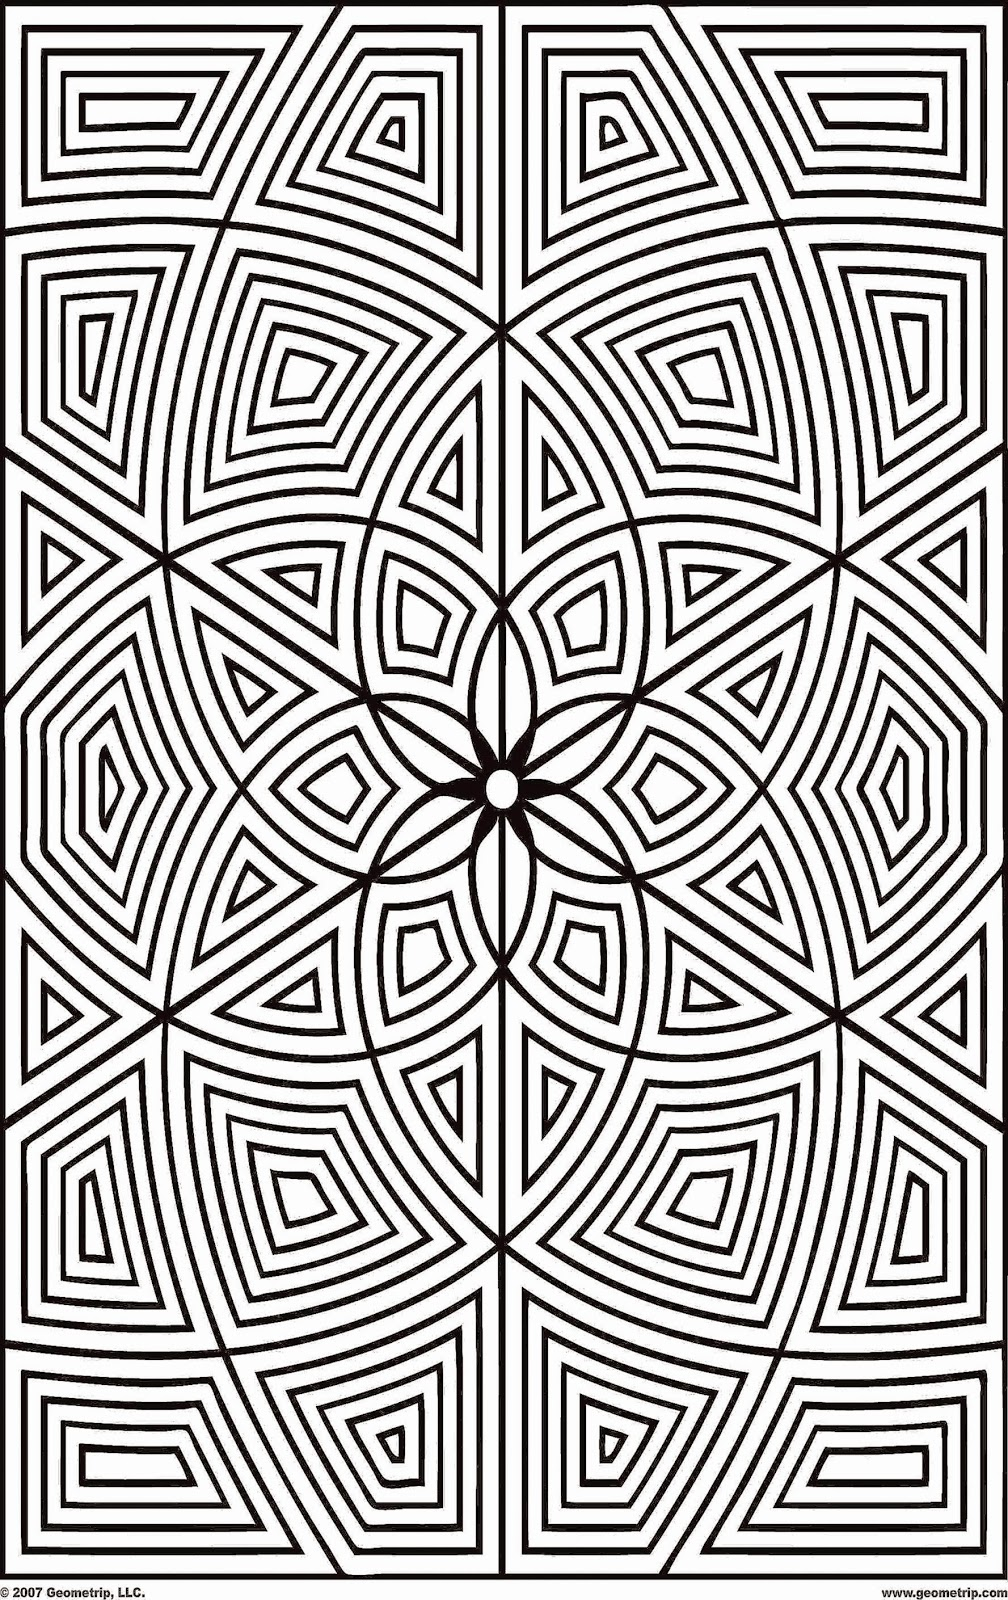 3d Coloring Pages Ideas - Whitesbelfast | 1600x1008